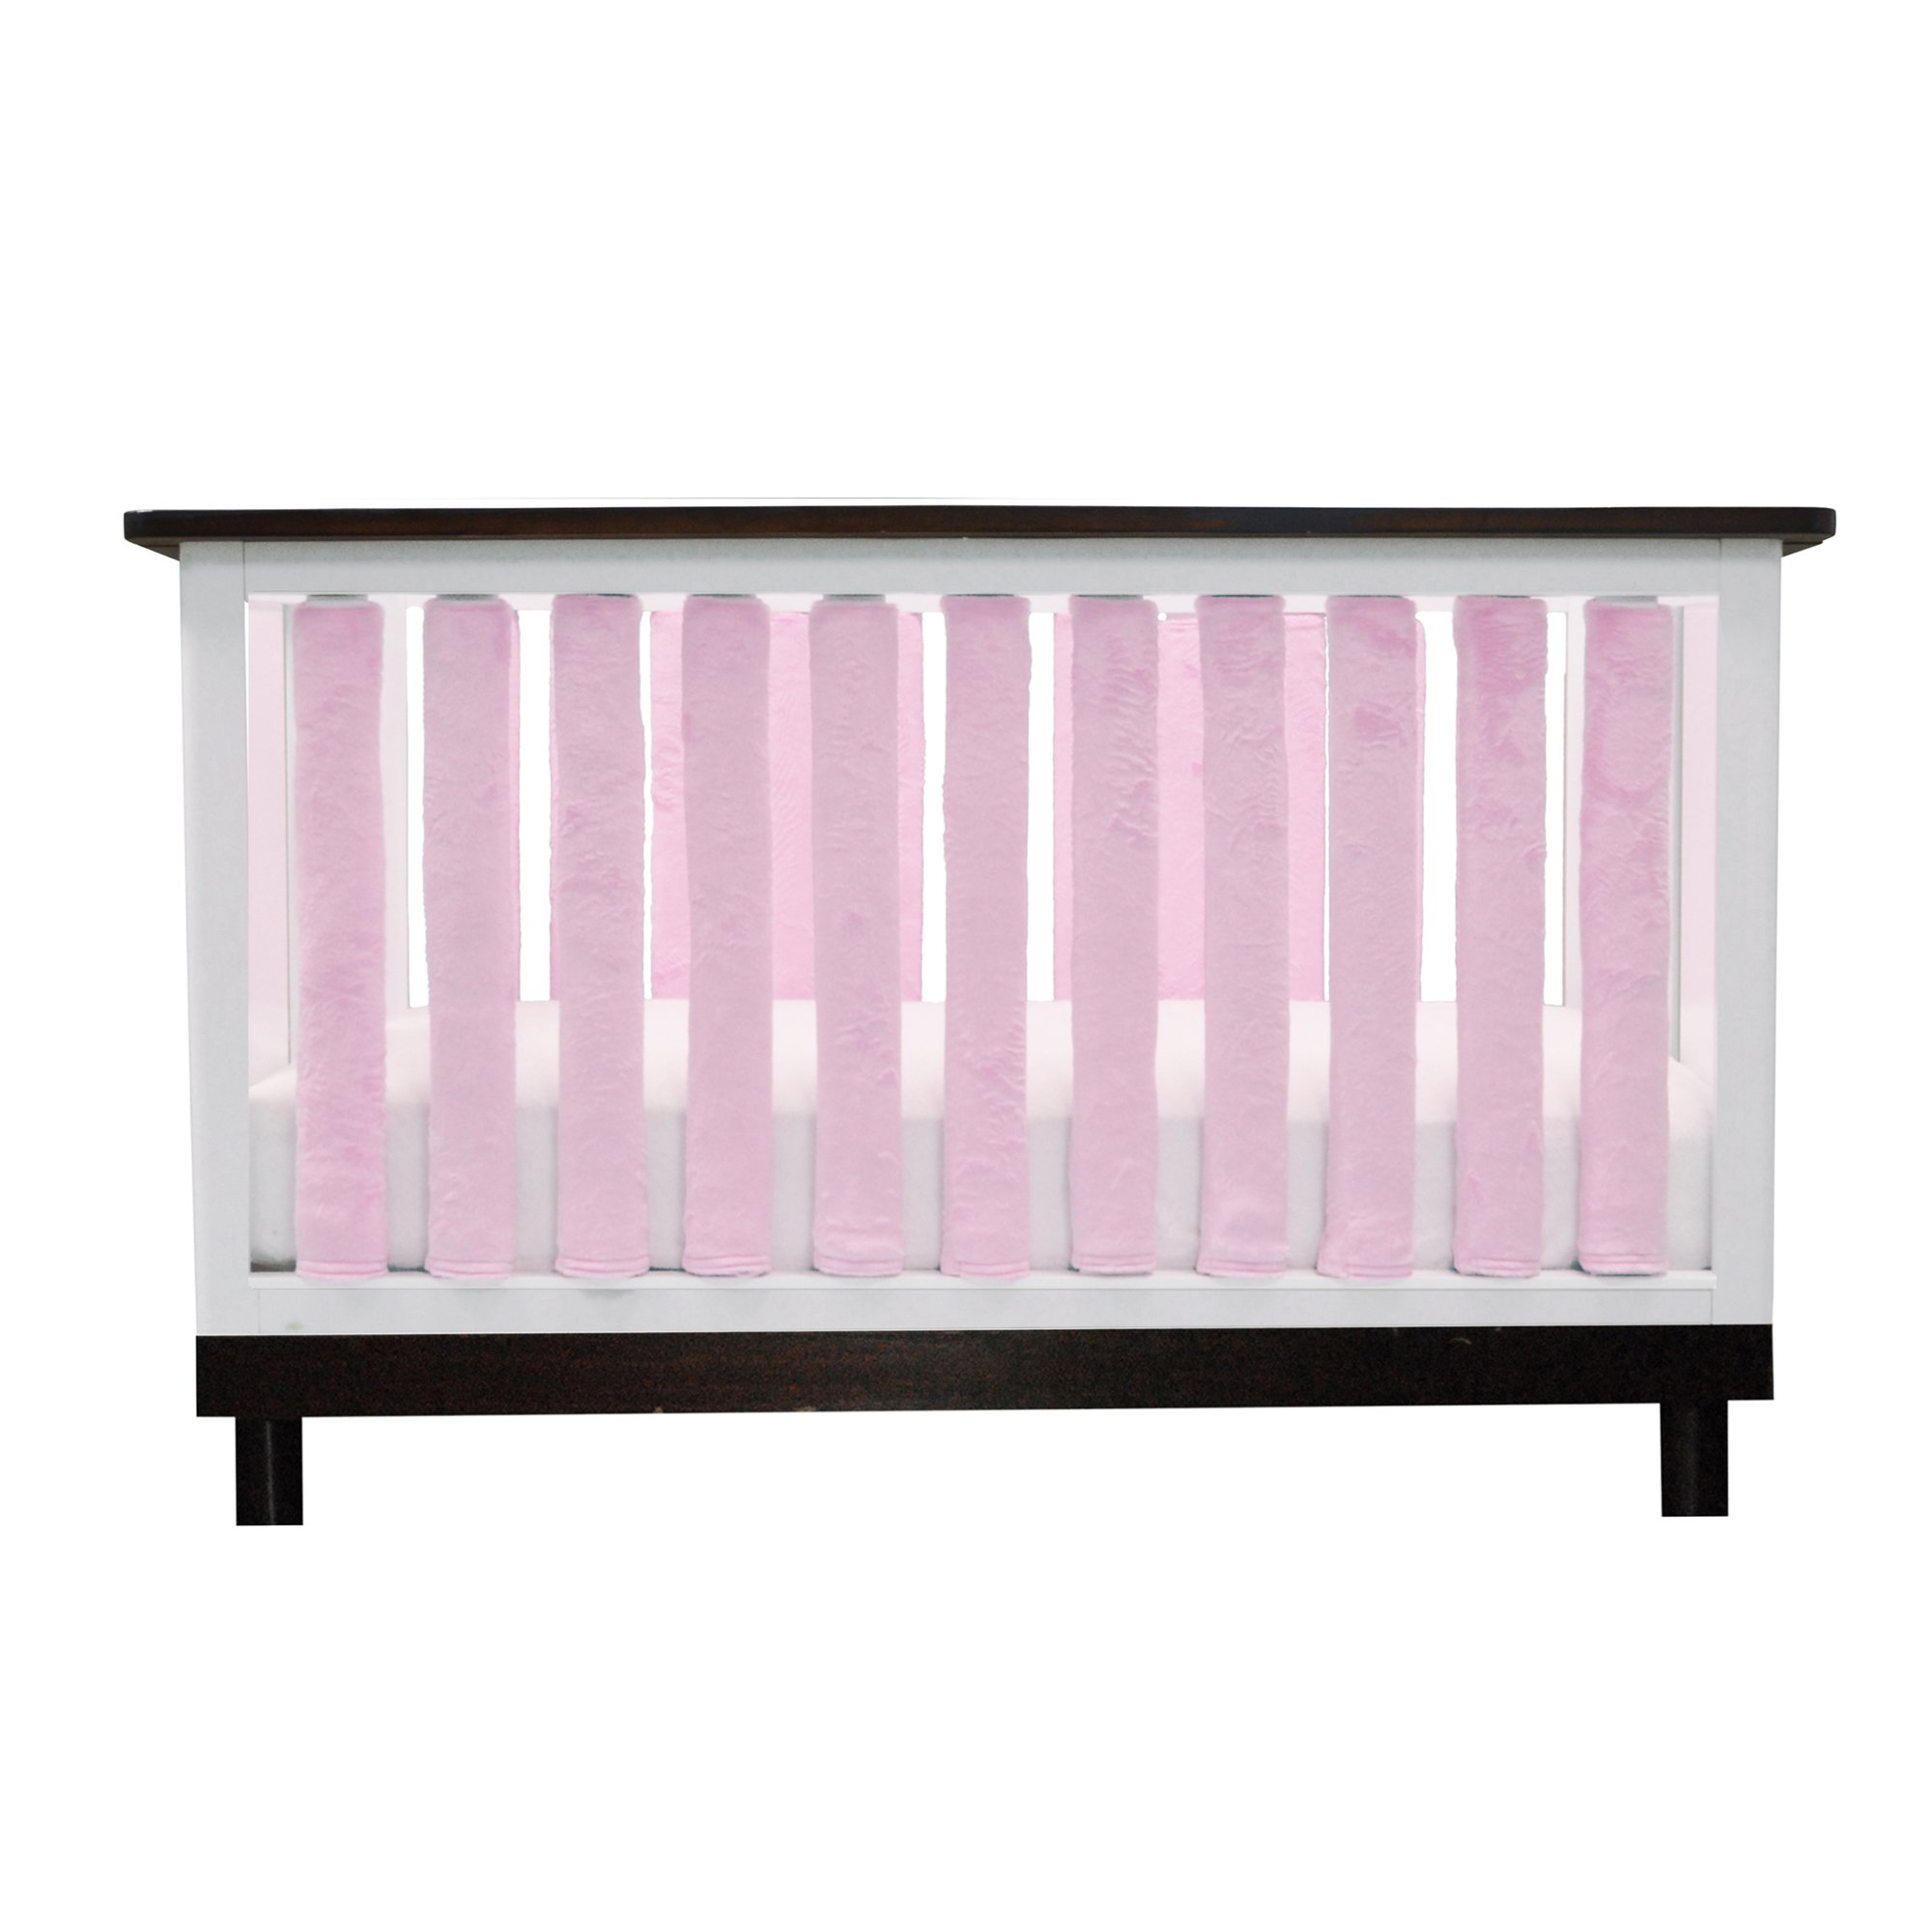 Pure Safety Vertical Crib Liners in Luxurious Pink Minky 38 Pack by Go Mama Go